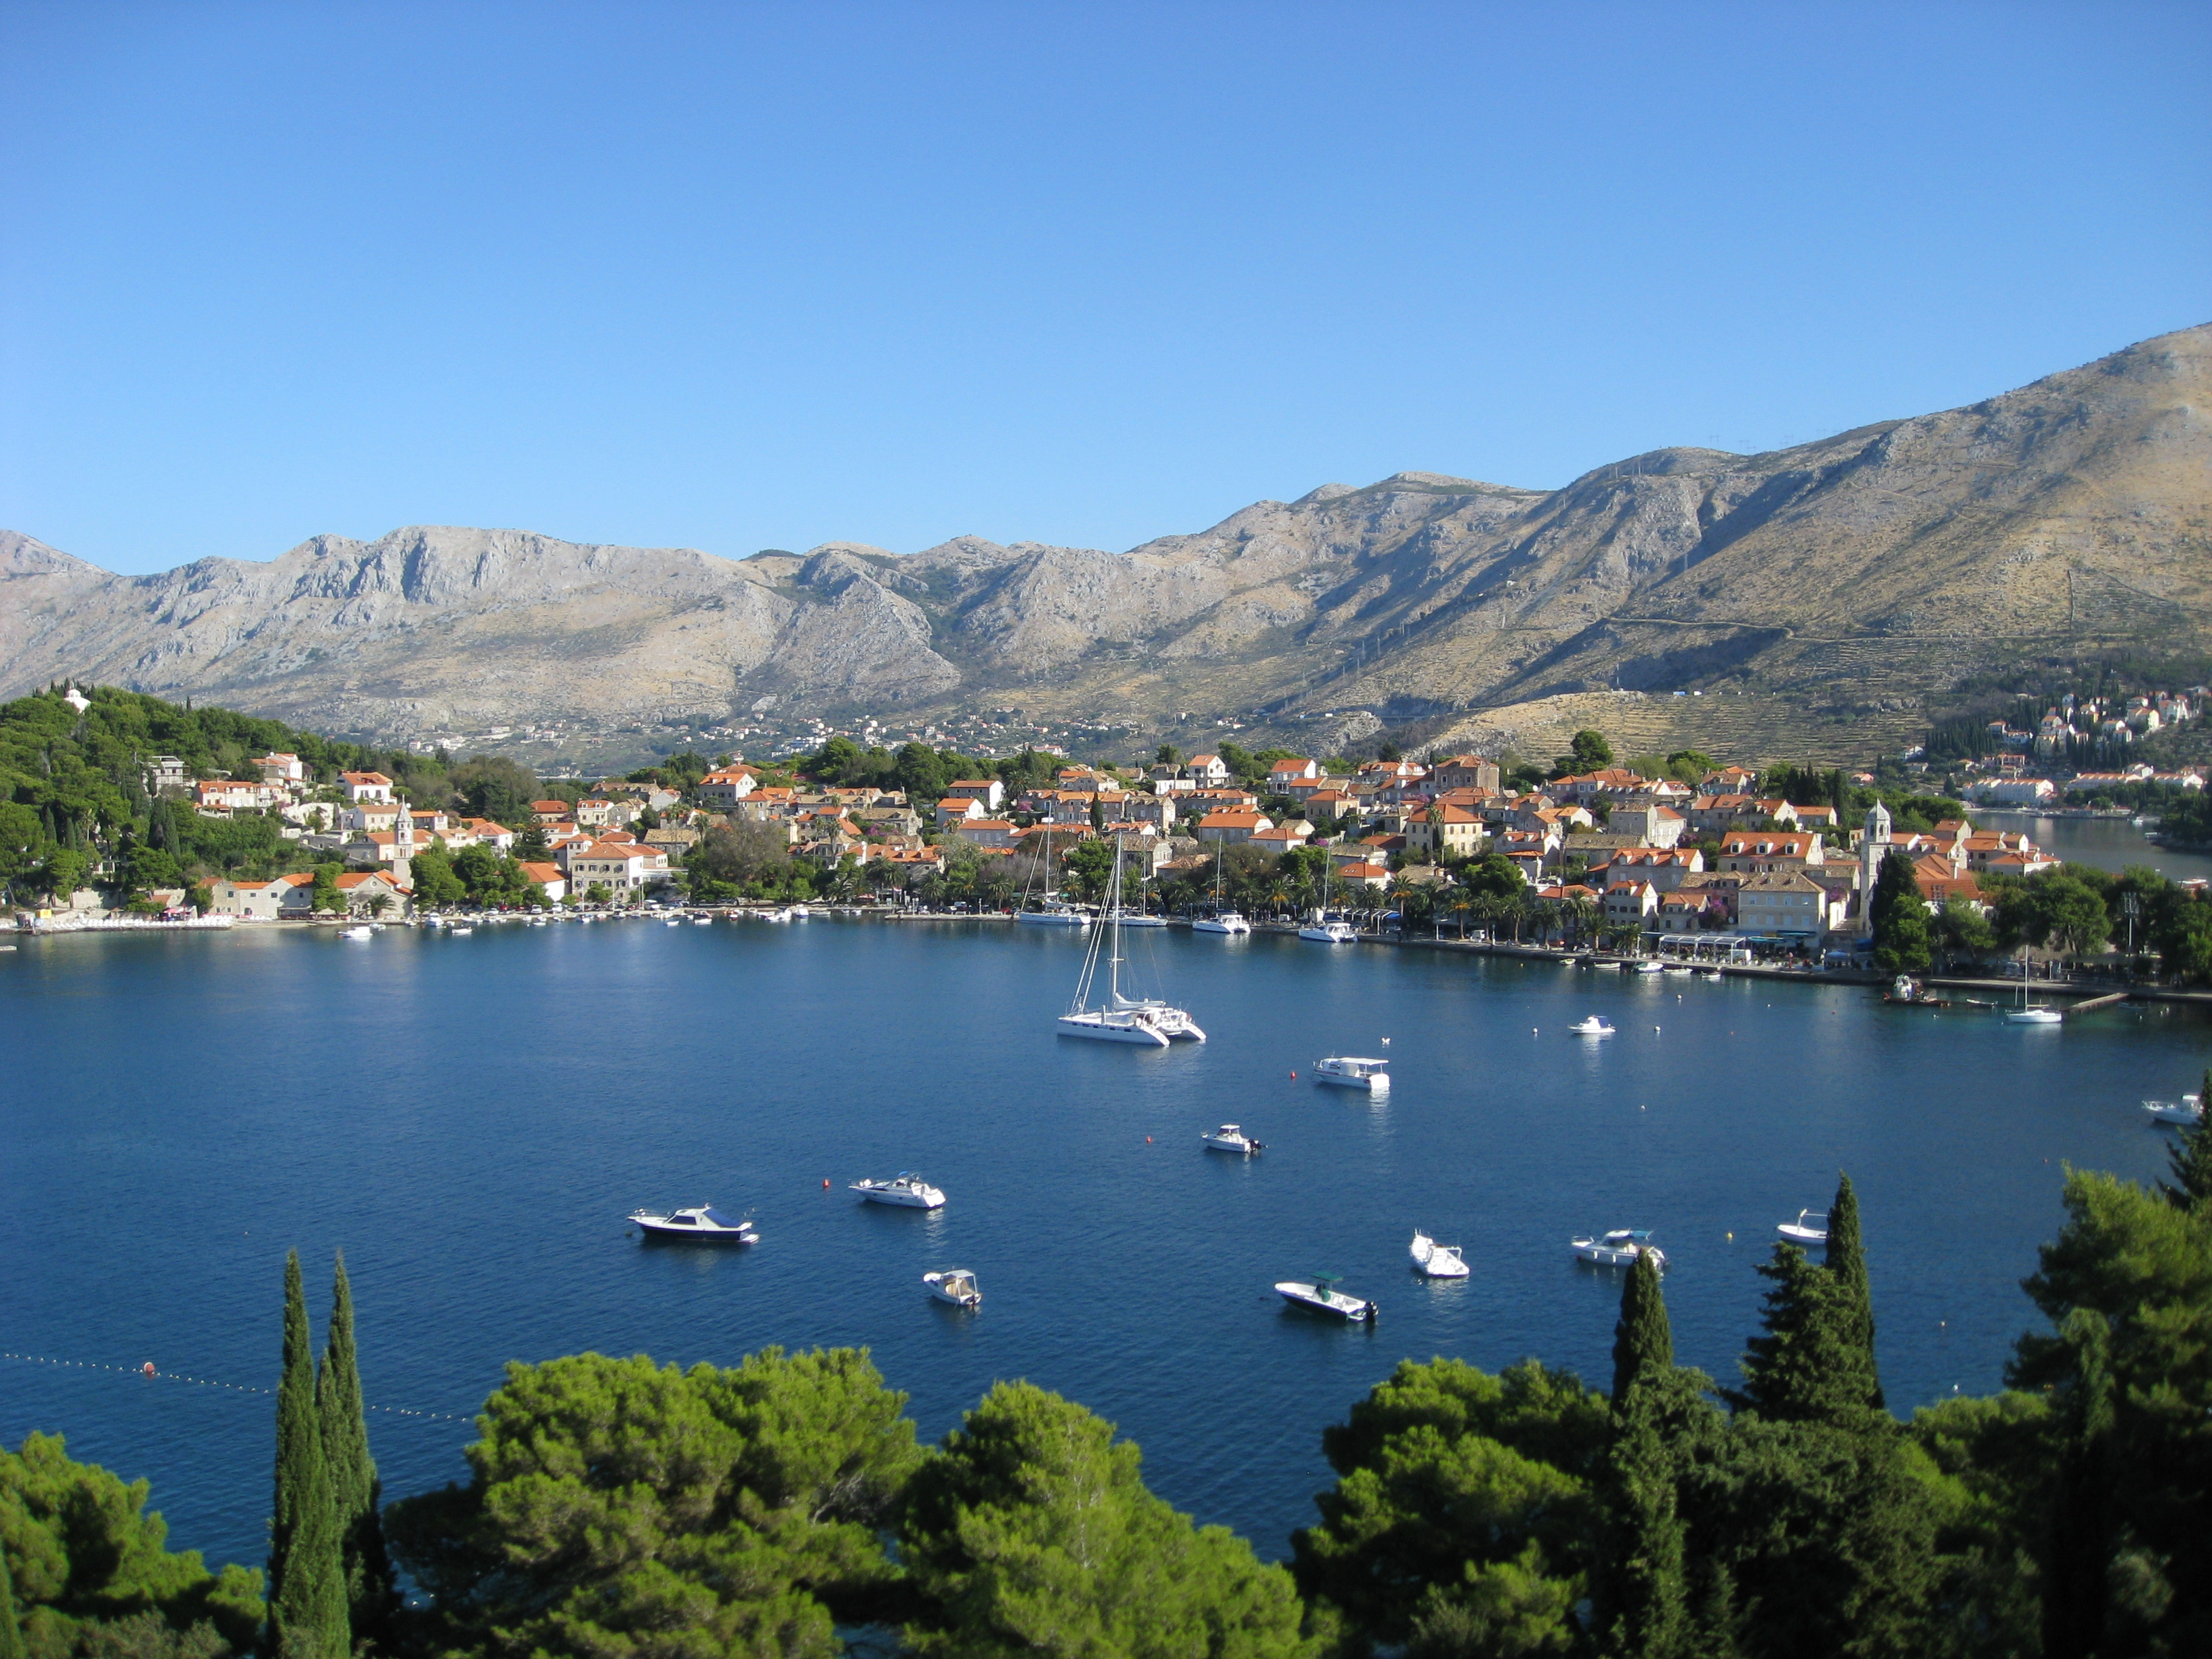 File:Cavtat Croatia 2008-10-07.JPG - Wikimedia Commons